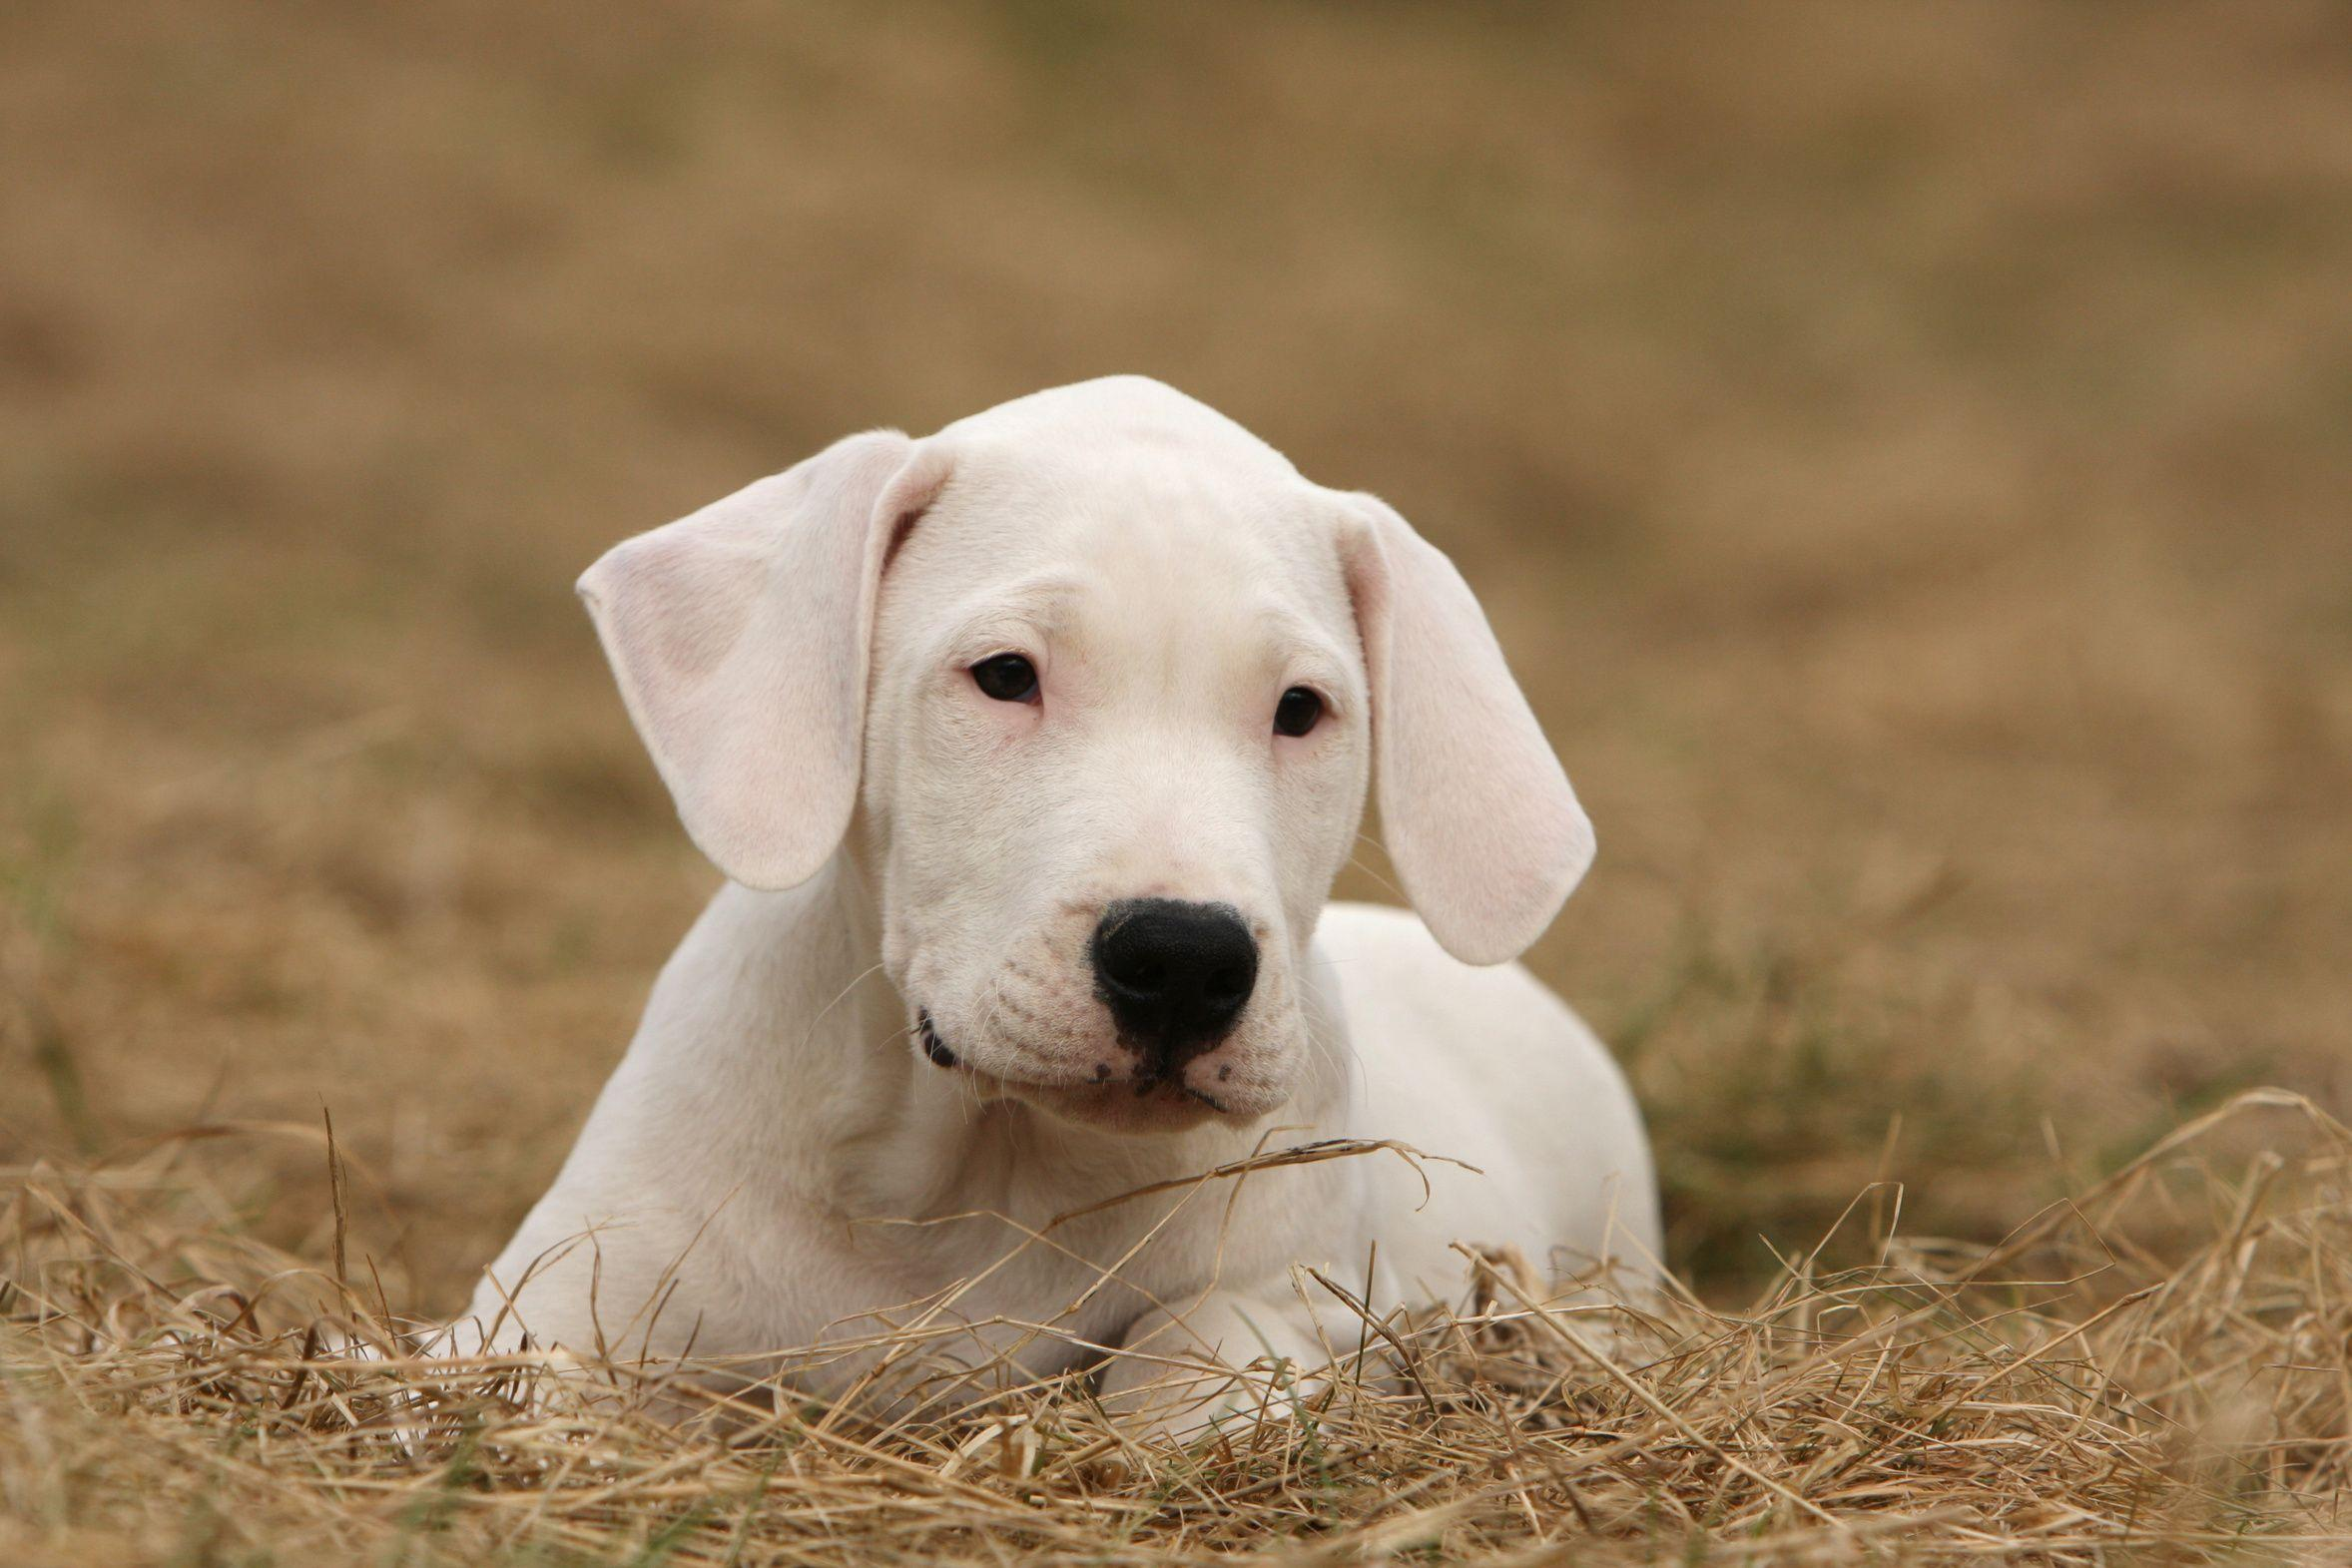 Dogo Argentino Puppy on dried grass wallpapers and images ...